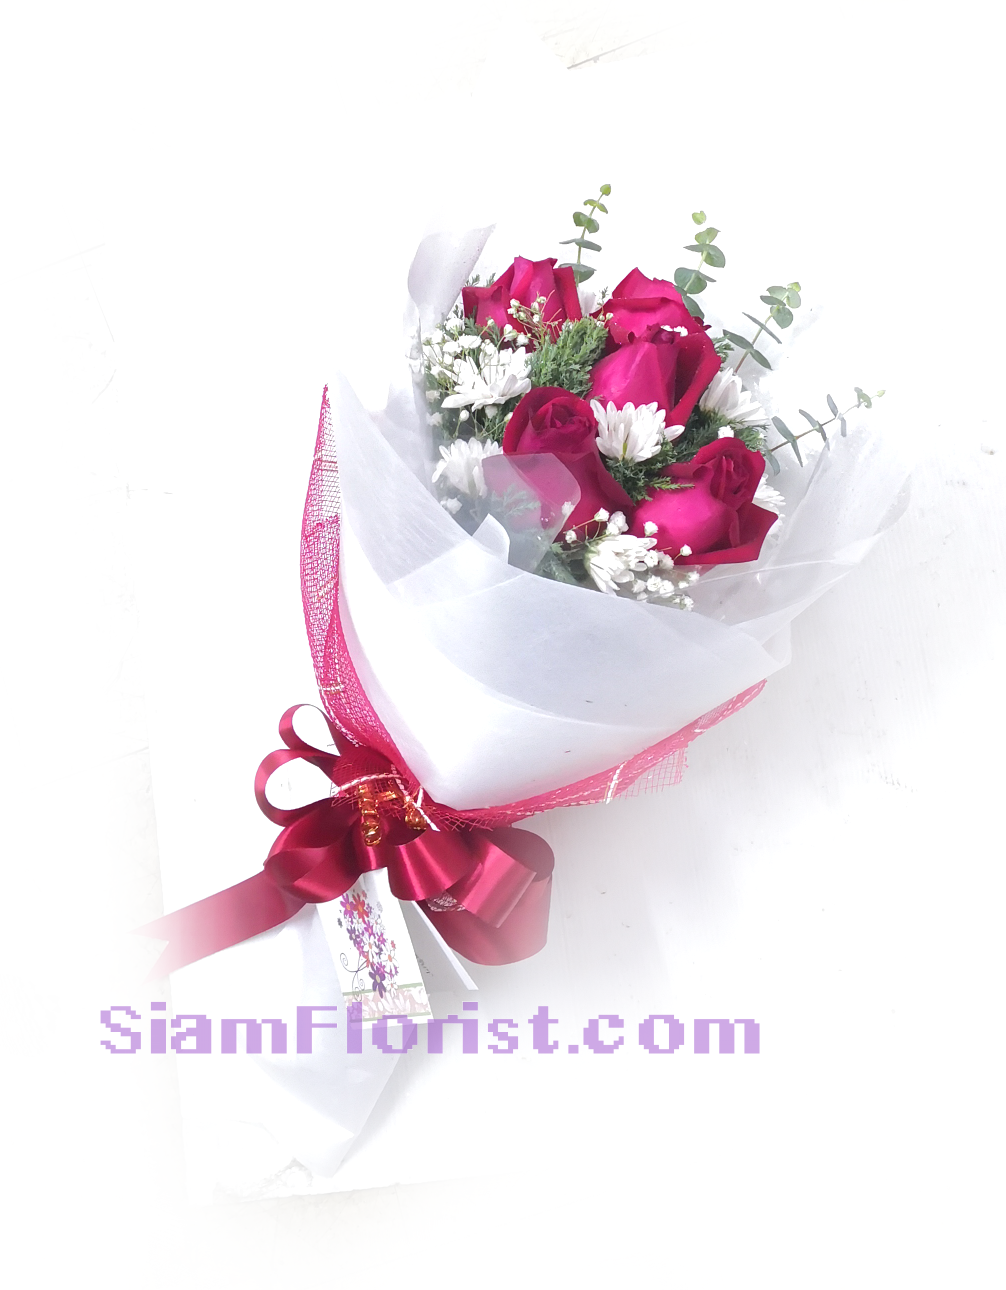 01888 Bouquet of Mixed Flowers